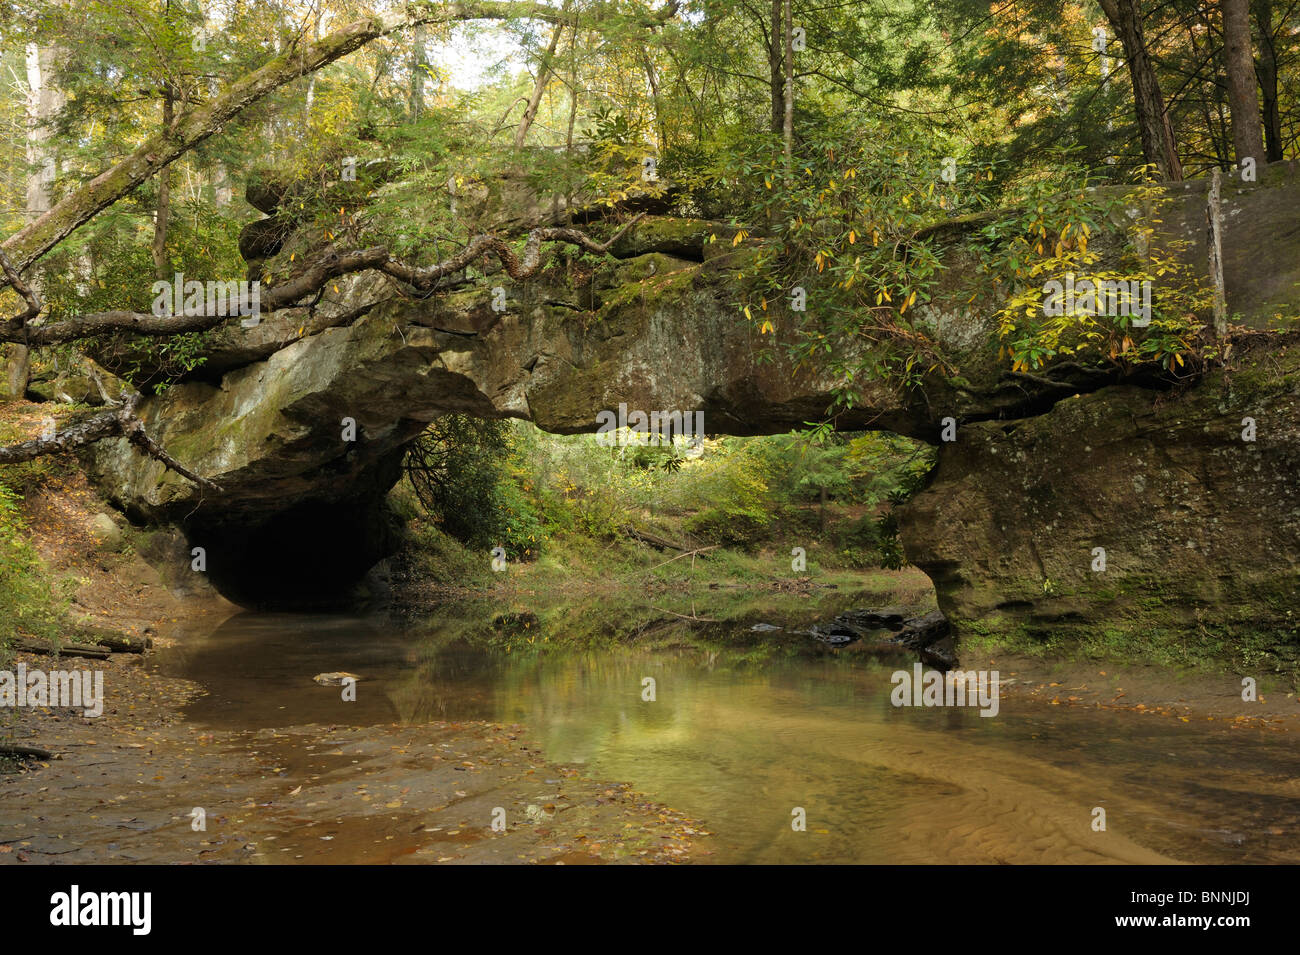 Rocky Arch Creek Arch Daniel Boone National Forest The Red River Gorge Geological Area Kentucky USA - Stock Image